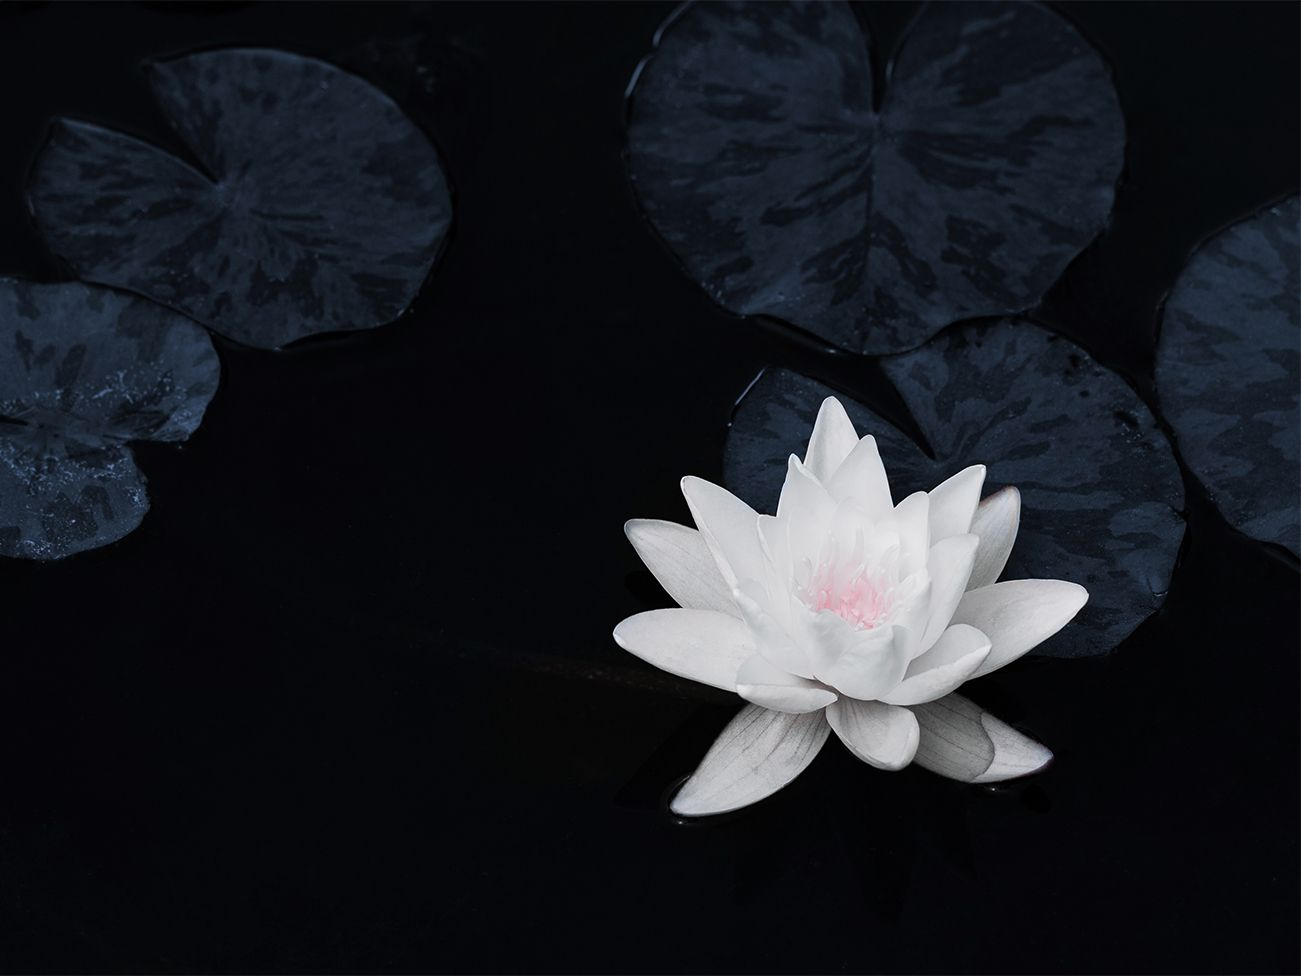 Water lily – calm